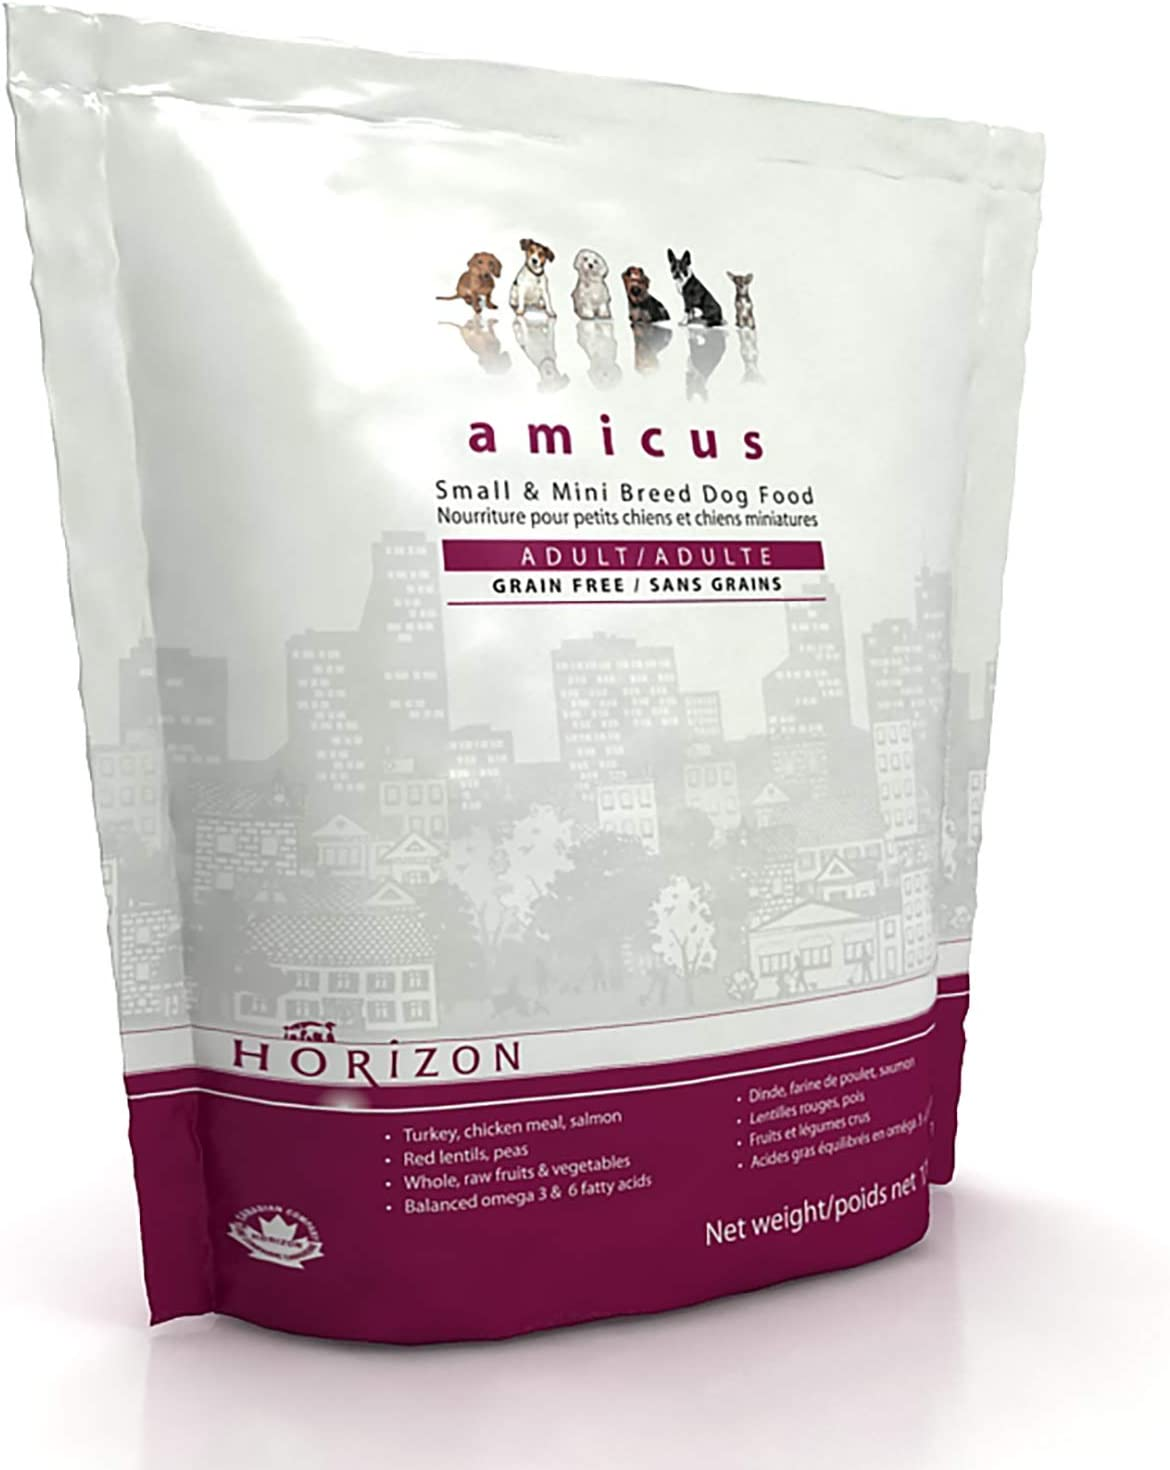 Horizon PET Nutrition Amicus Small and Micro Breed, All Life Stage Dry Dog Food